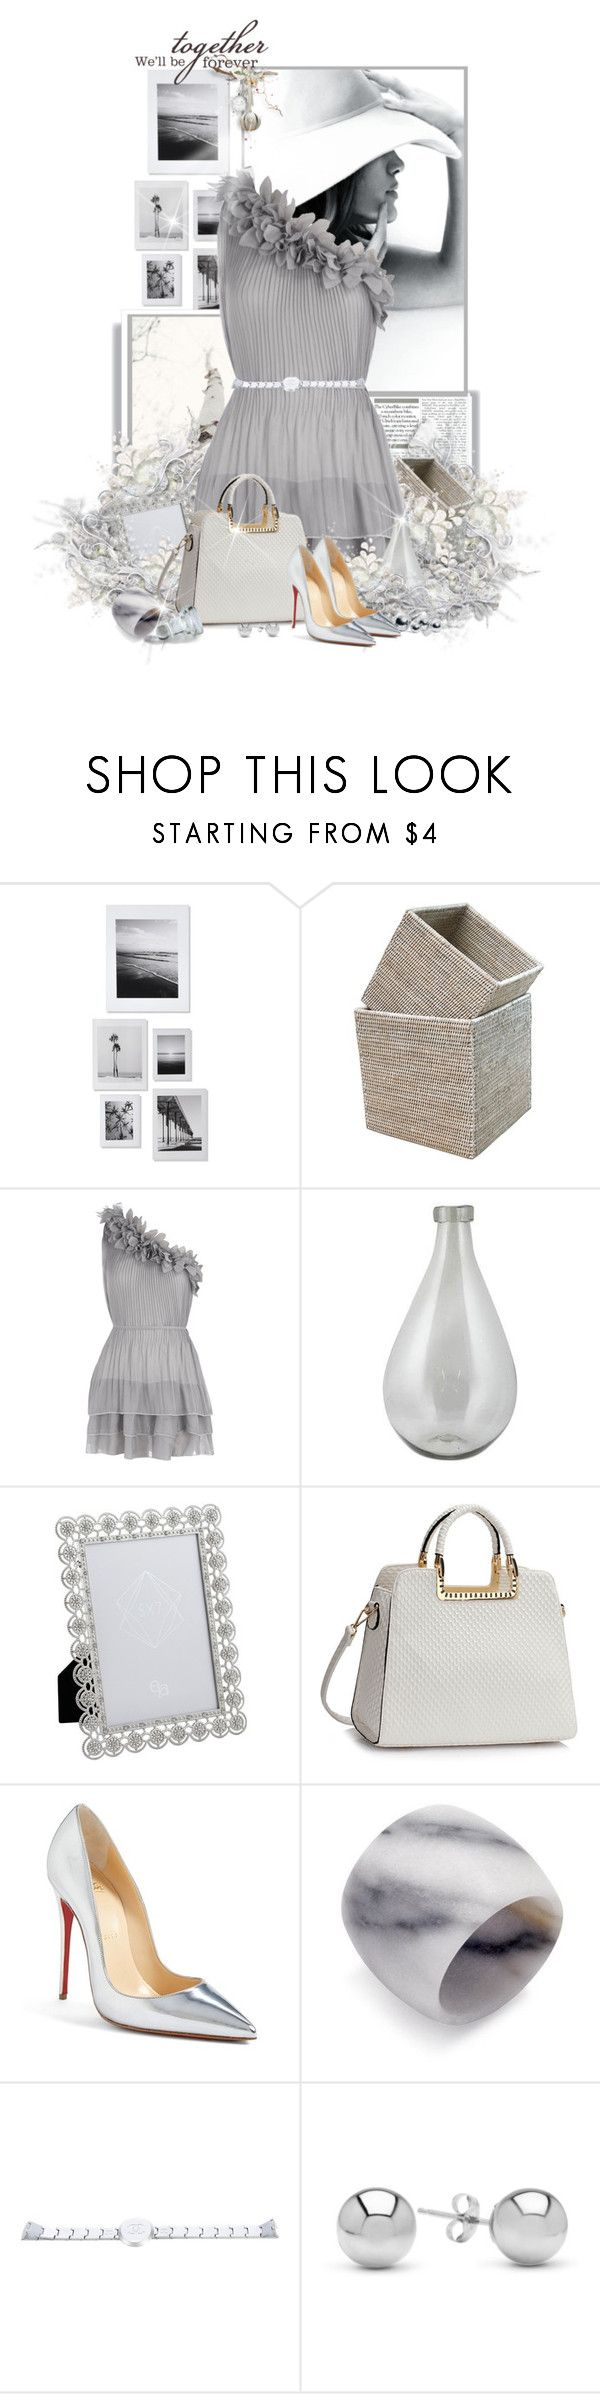 """""""ana"""" by ana-costa-queiroz ❤ liked on Polyvore featuring DENY Designs, Jennifer Lopez, Brucs, Dorothy Perkins, NOVICA, Era Home, Christian Louboutin, Sur La Table, Elodie and Chanel"""